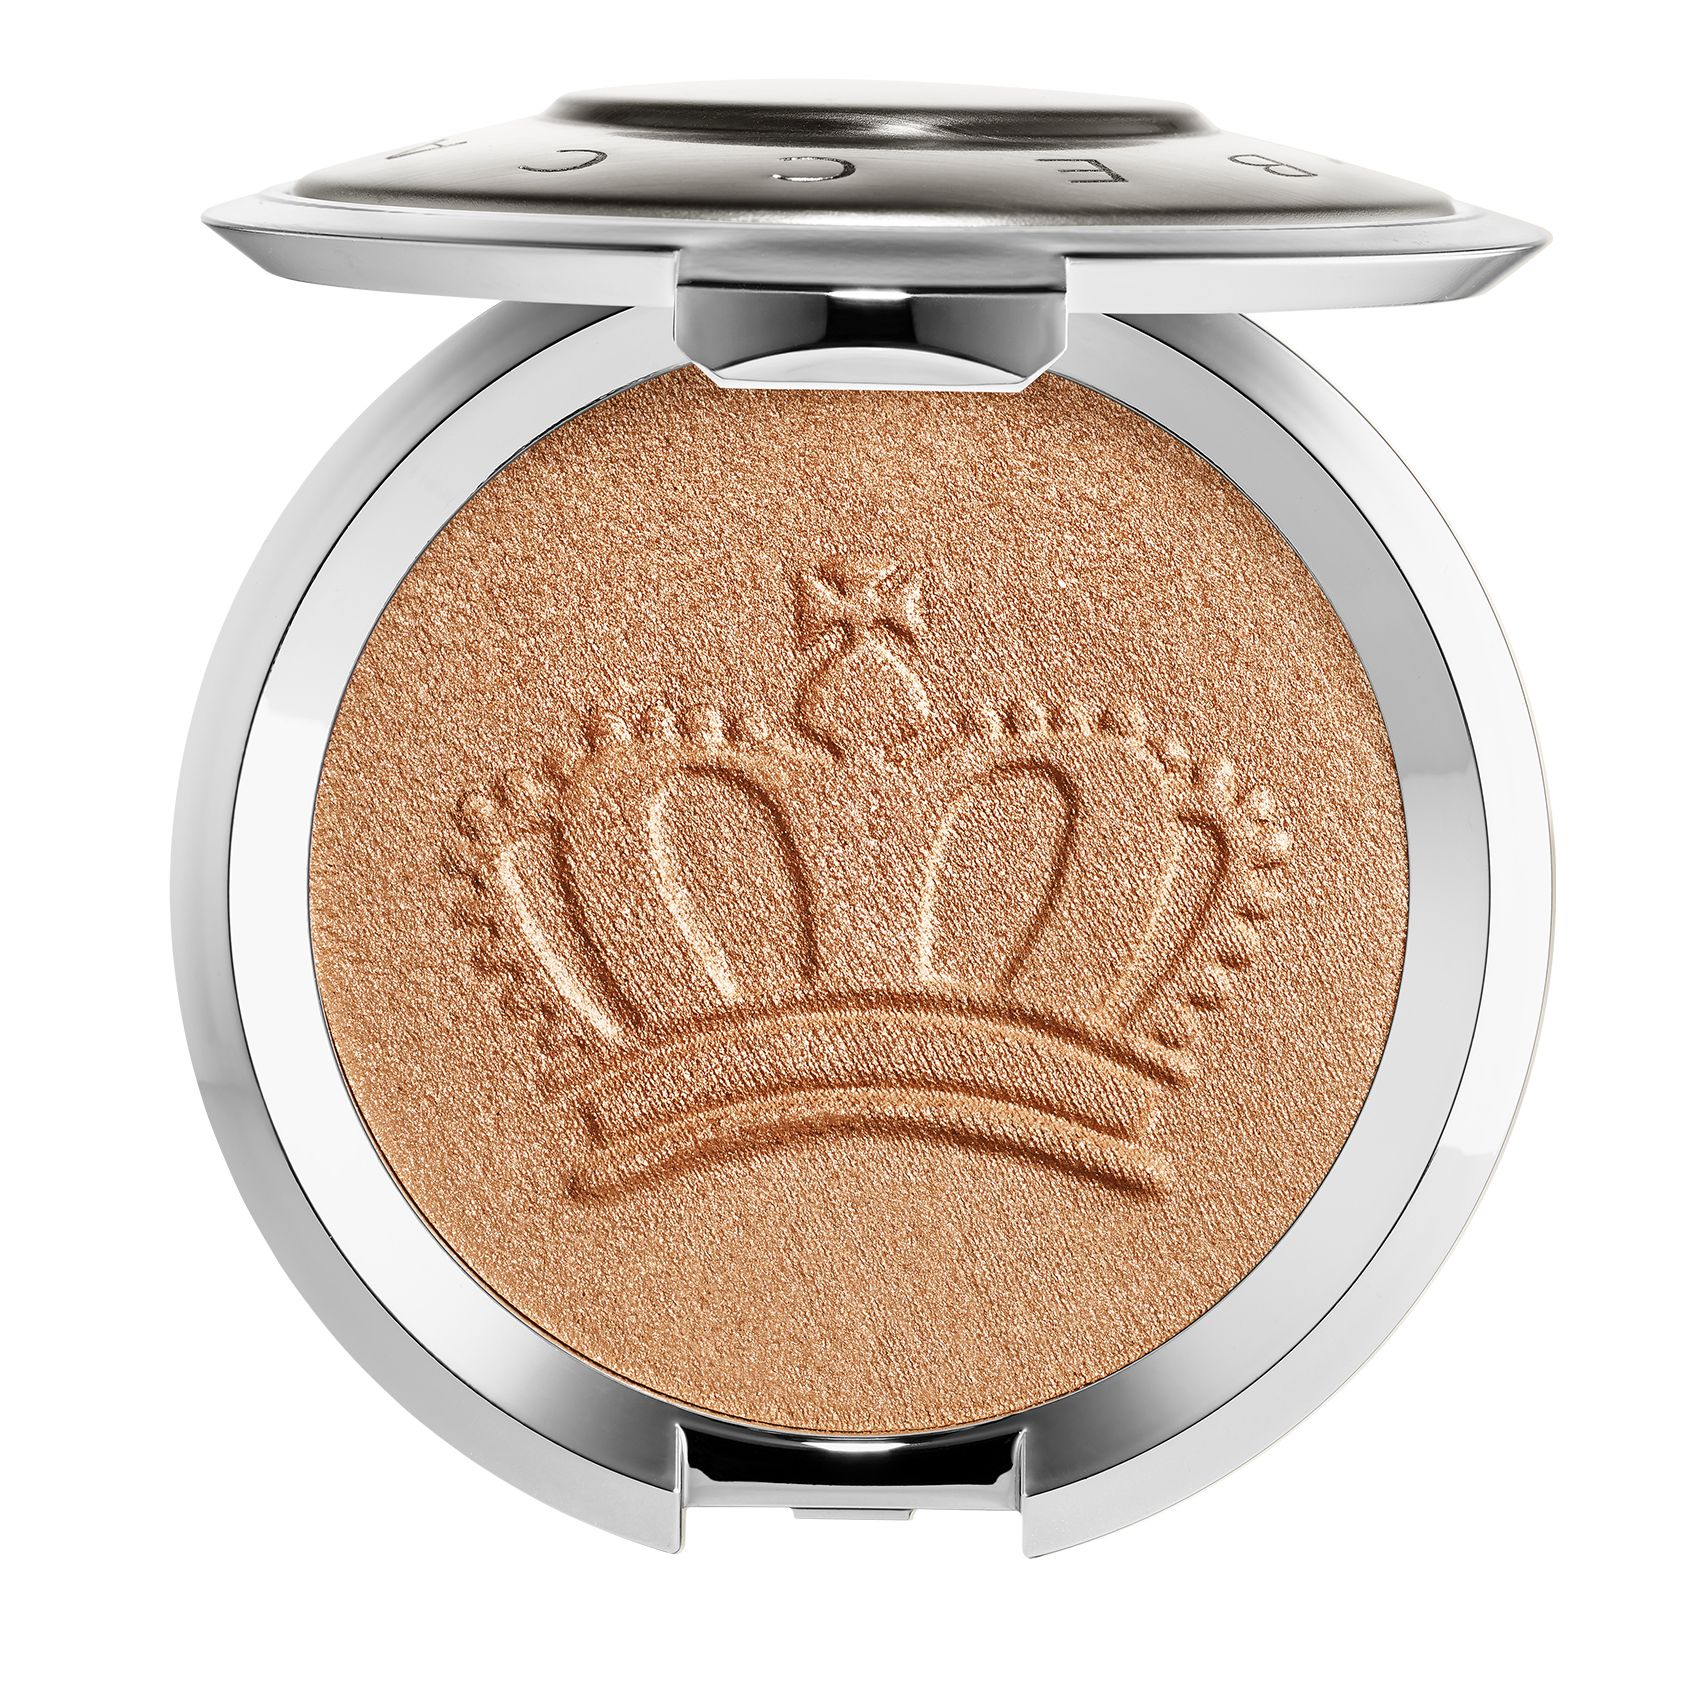 Becca BECCA Shimmering Skin Perfector™ Pressed Highlighter, Royal Glow